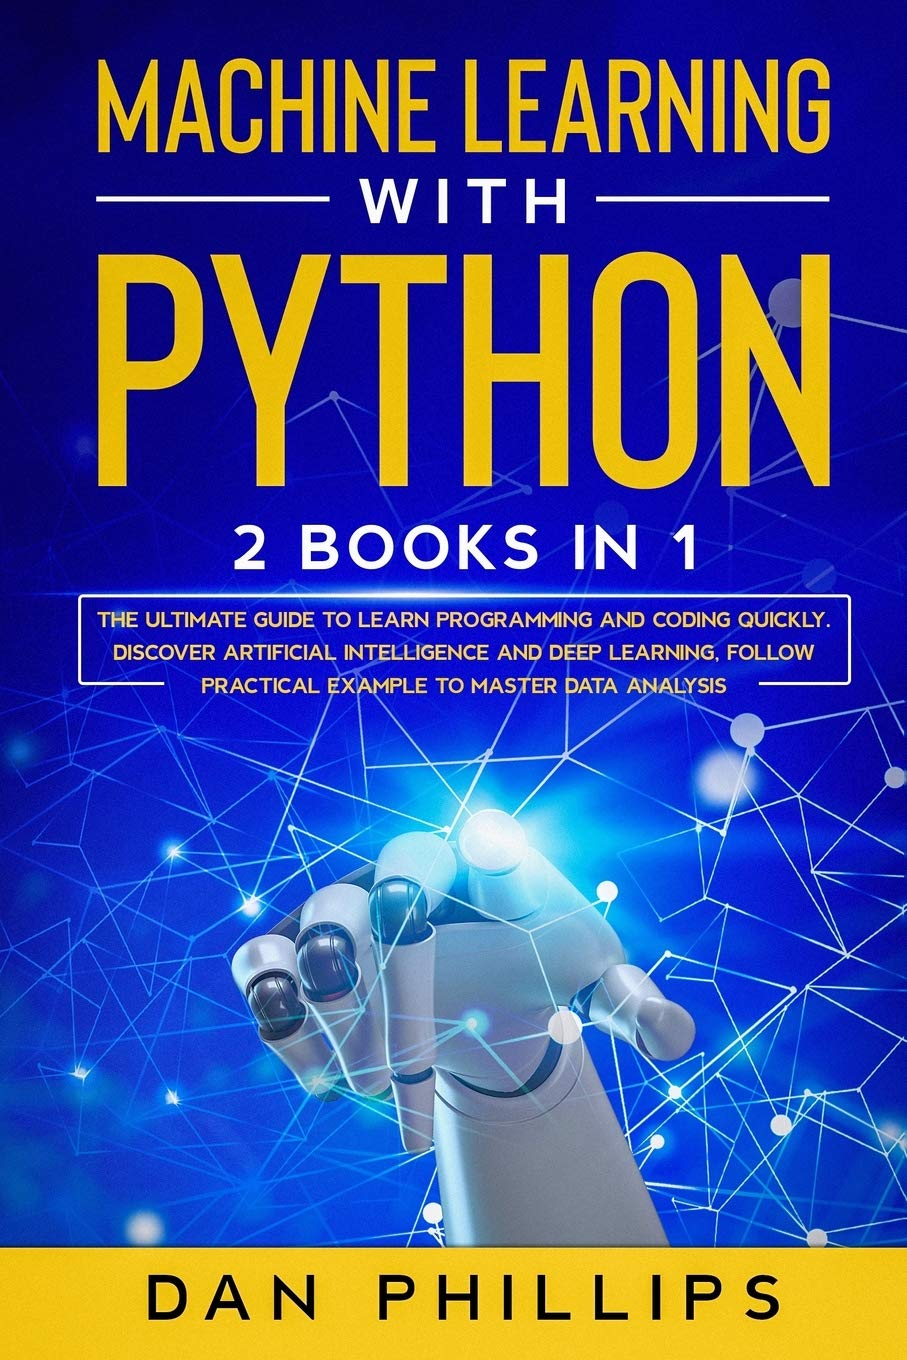 Machine Learning with Python: 2 Books in 1: The Ultimate Guide to Learn Programming and Coding Quickly. Discover Artificial Intelligence and Deep … Practical Example to Master Data Analysis